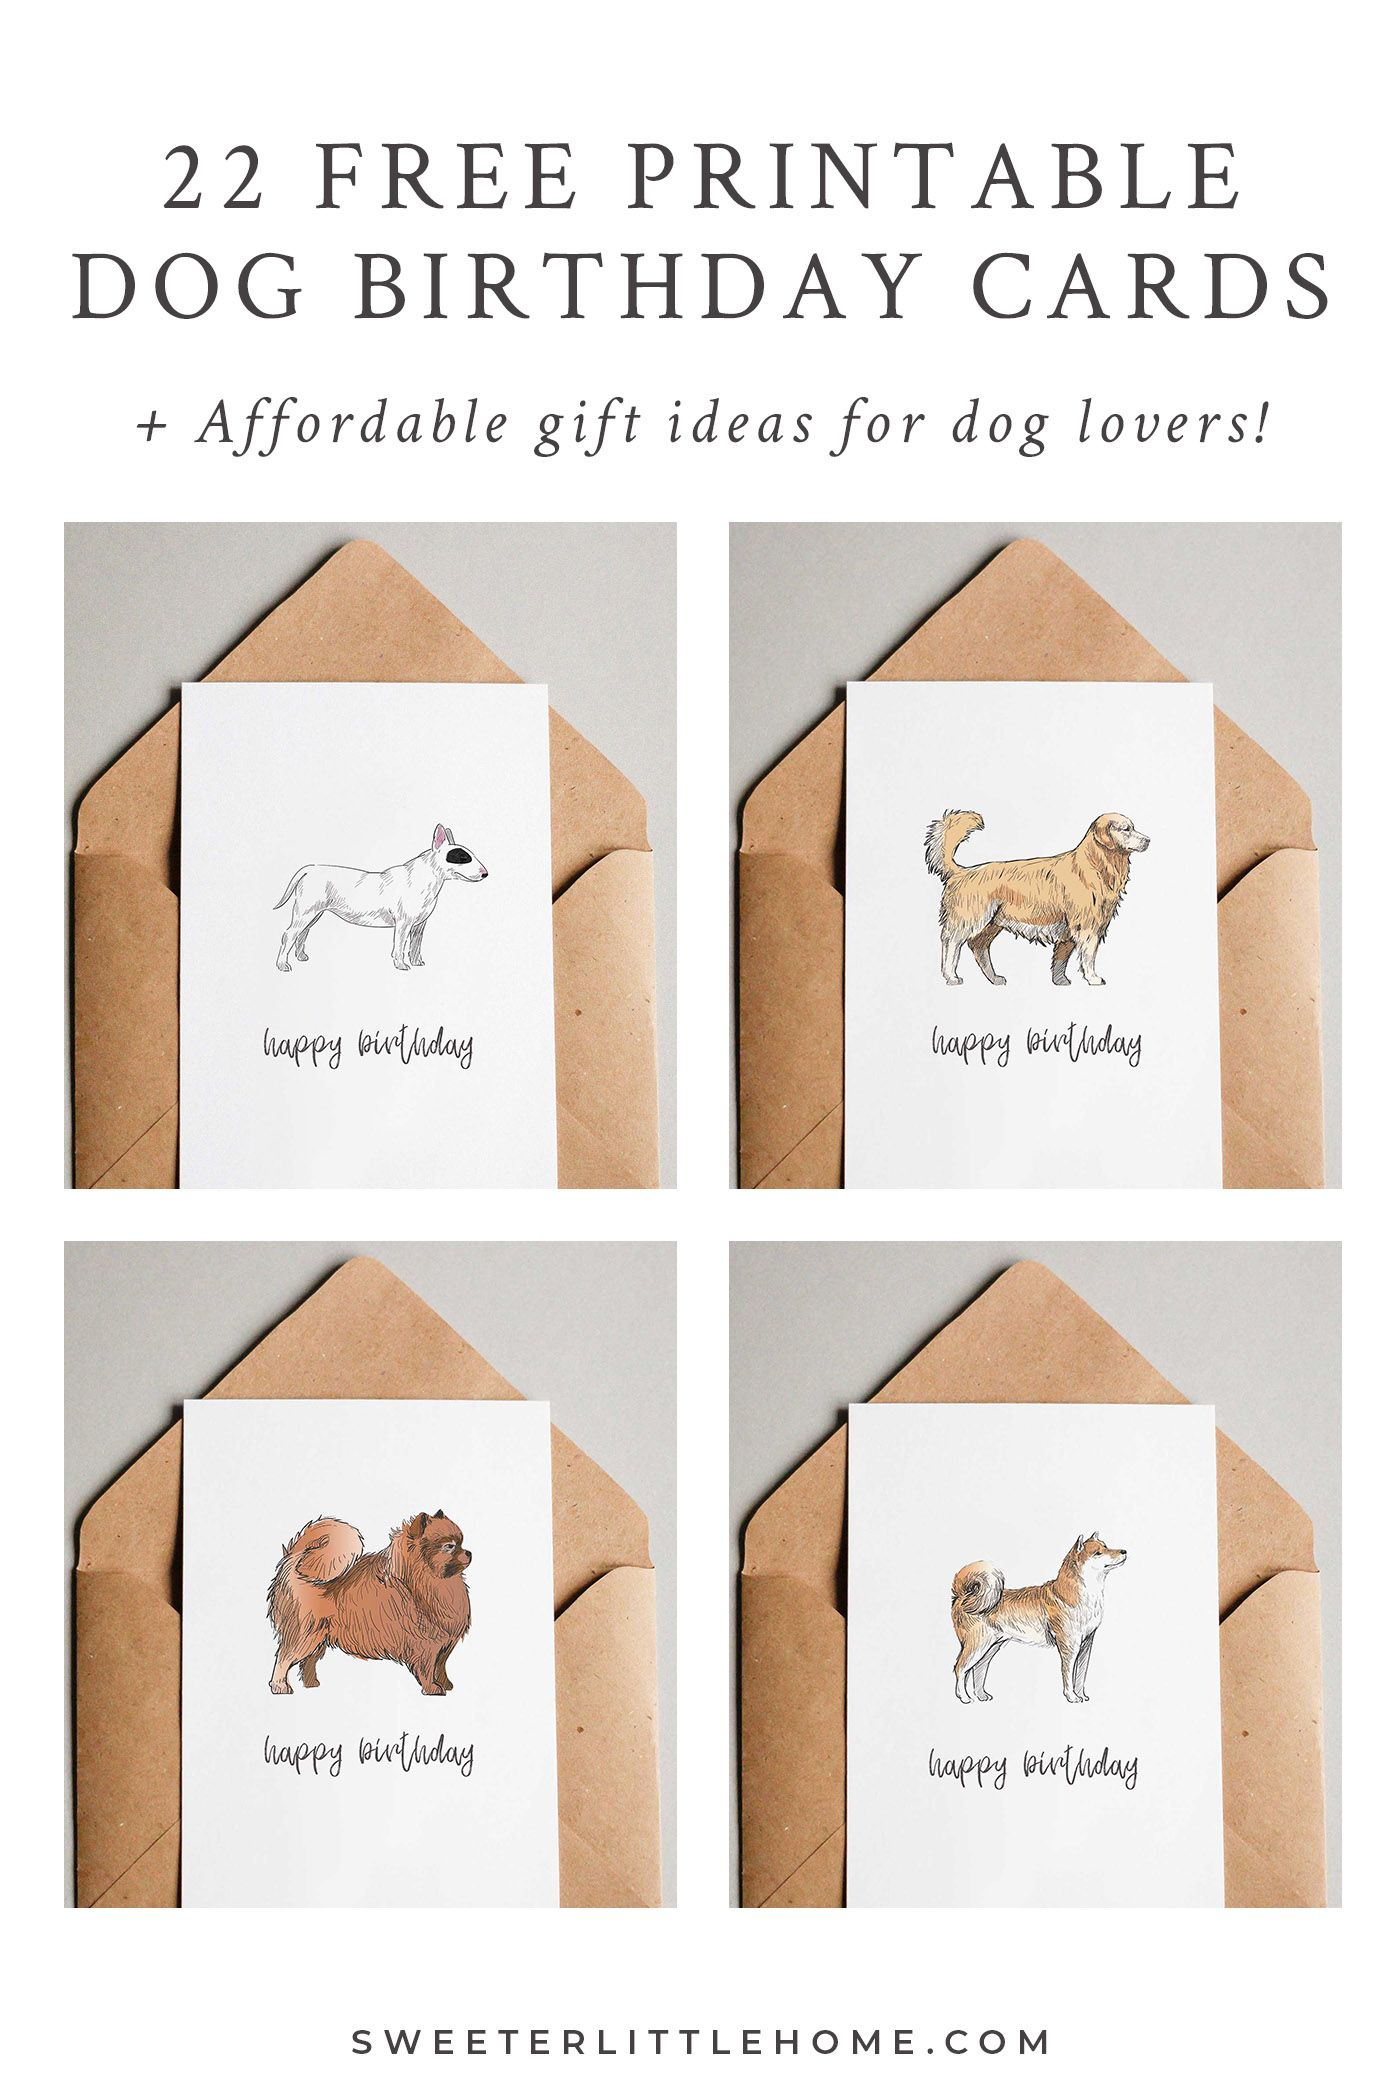 These Cute Free Printable Dog Birthday Cards Are A Great Way To Wish The Lover